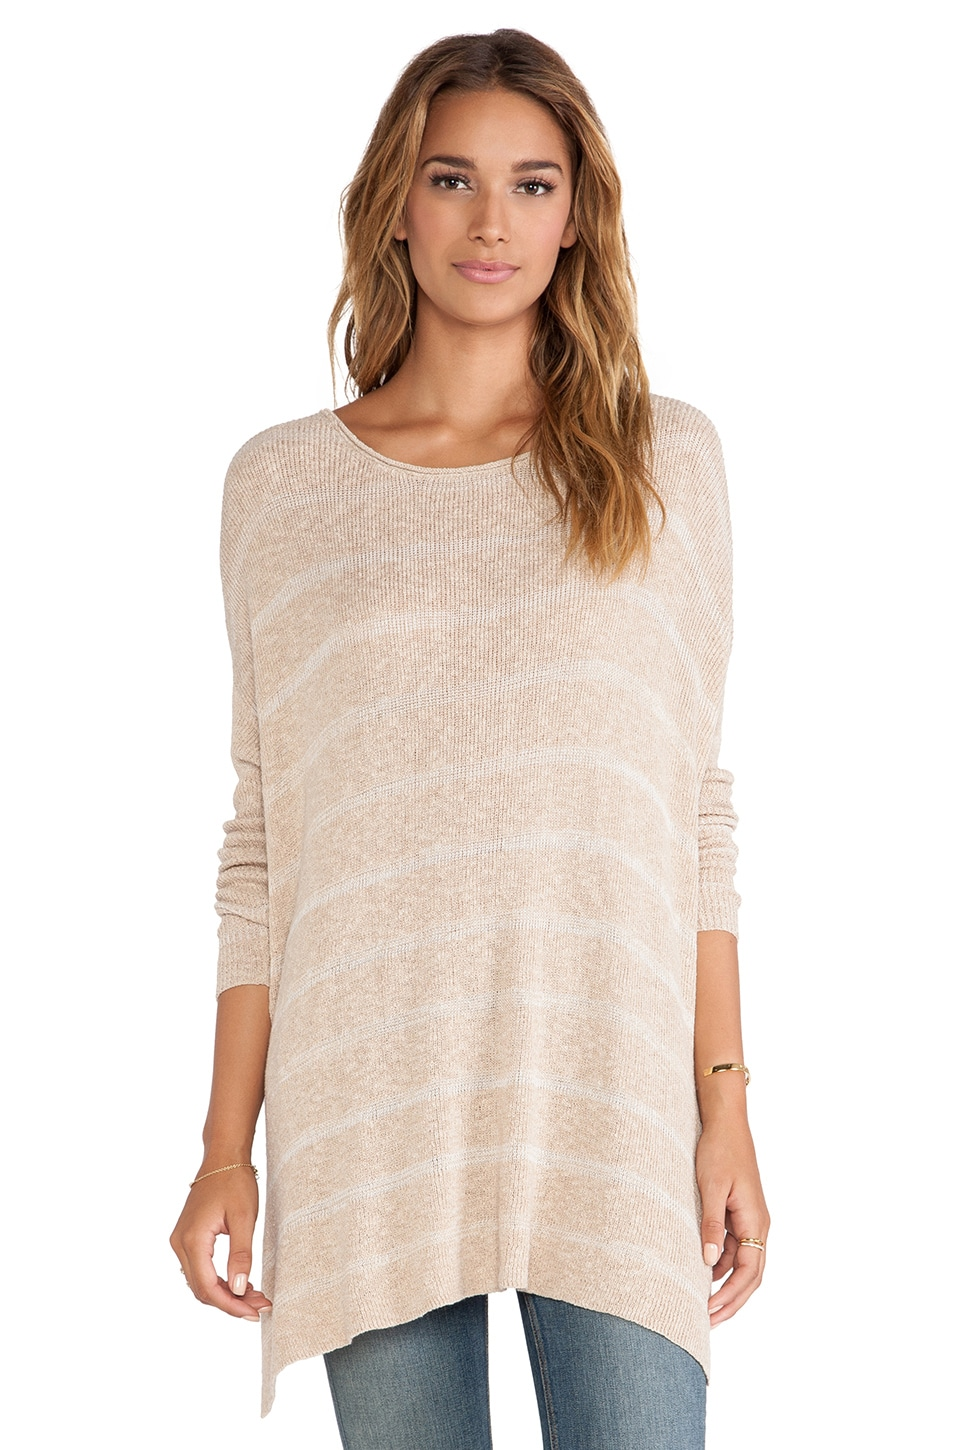 Free People Shipping News Tunic Sweater in Ballet Combo